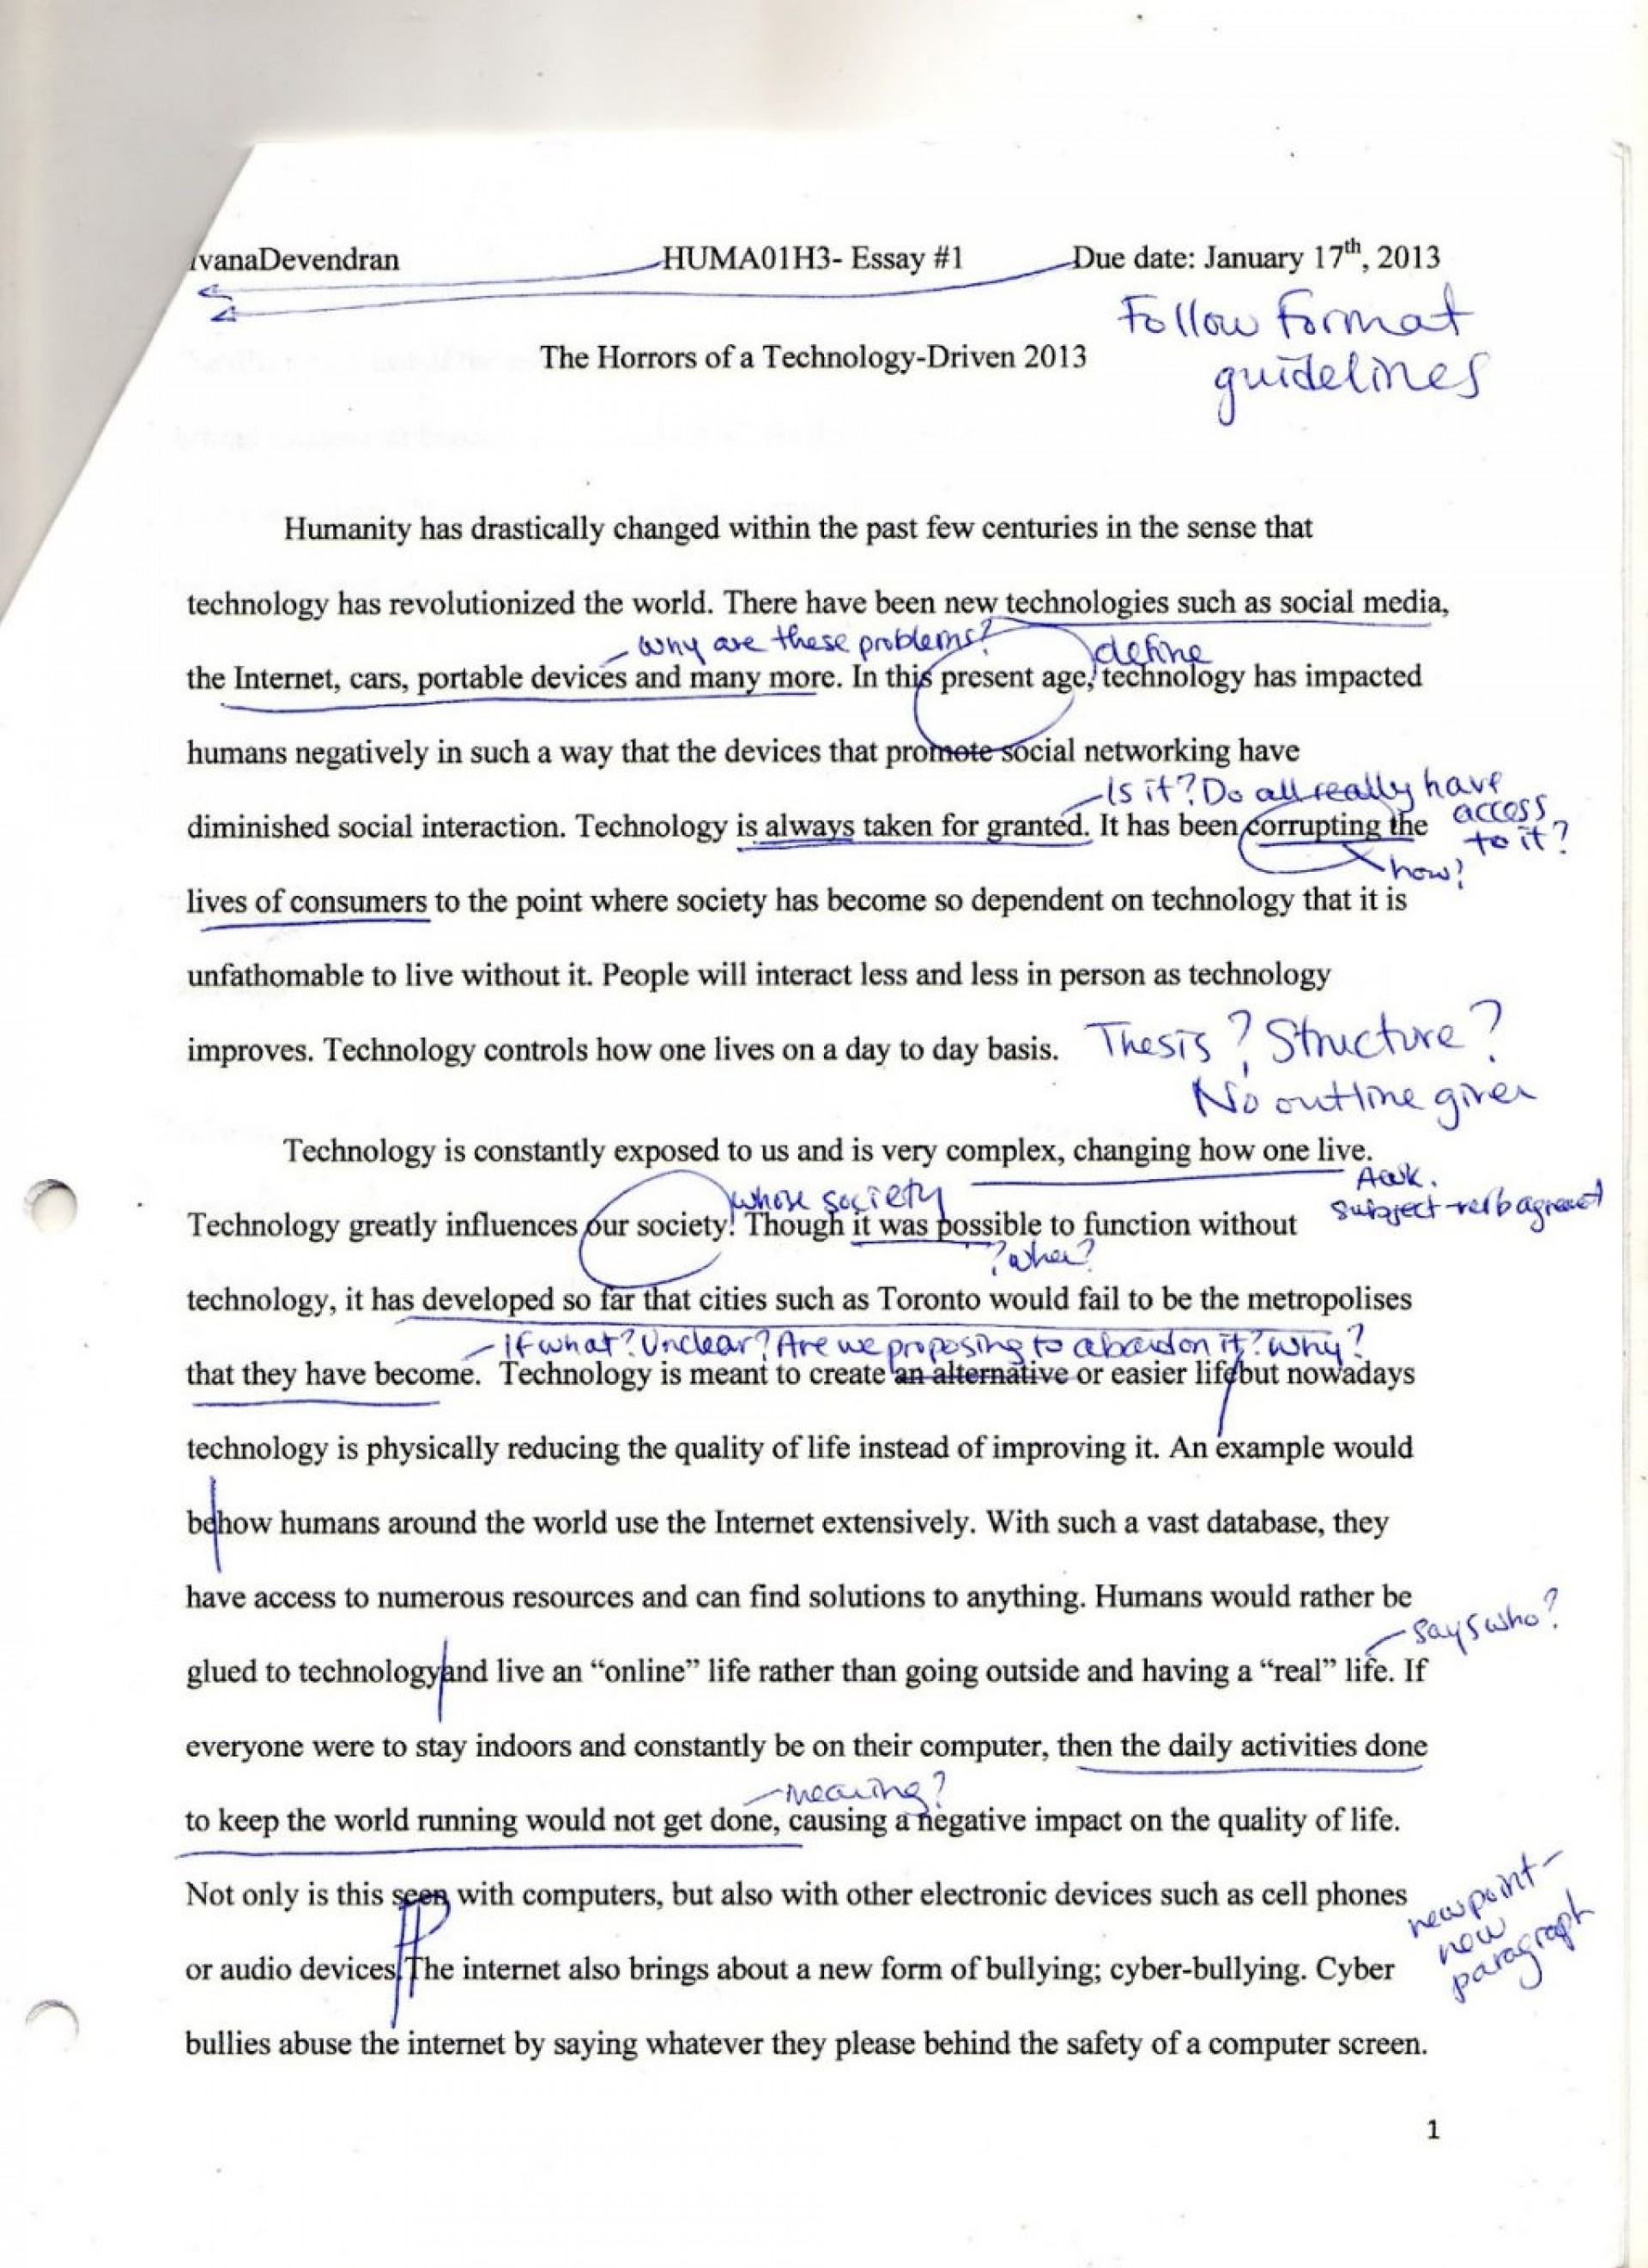 012 Popular Music Researchr Topics Essay Img008 What Should You Avoid In Writing Humanities Appreciation Questions Classical History Persuasive20 1024x1410 Fantastic Research Paper 1920